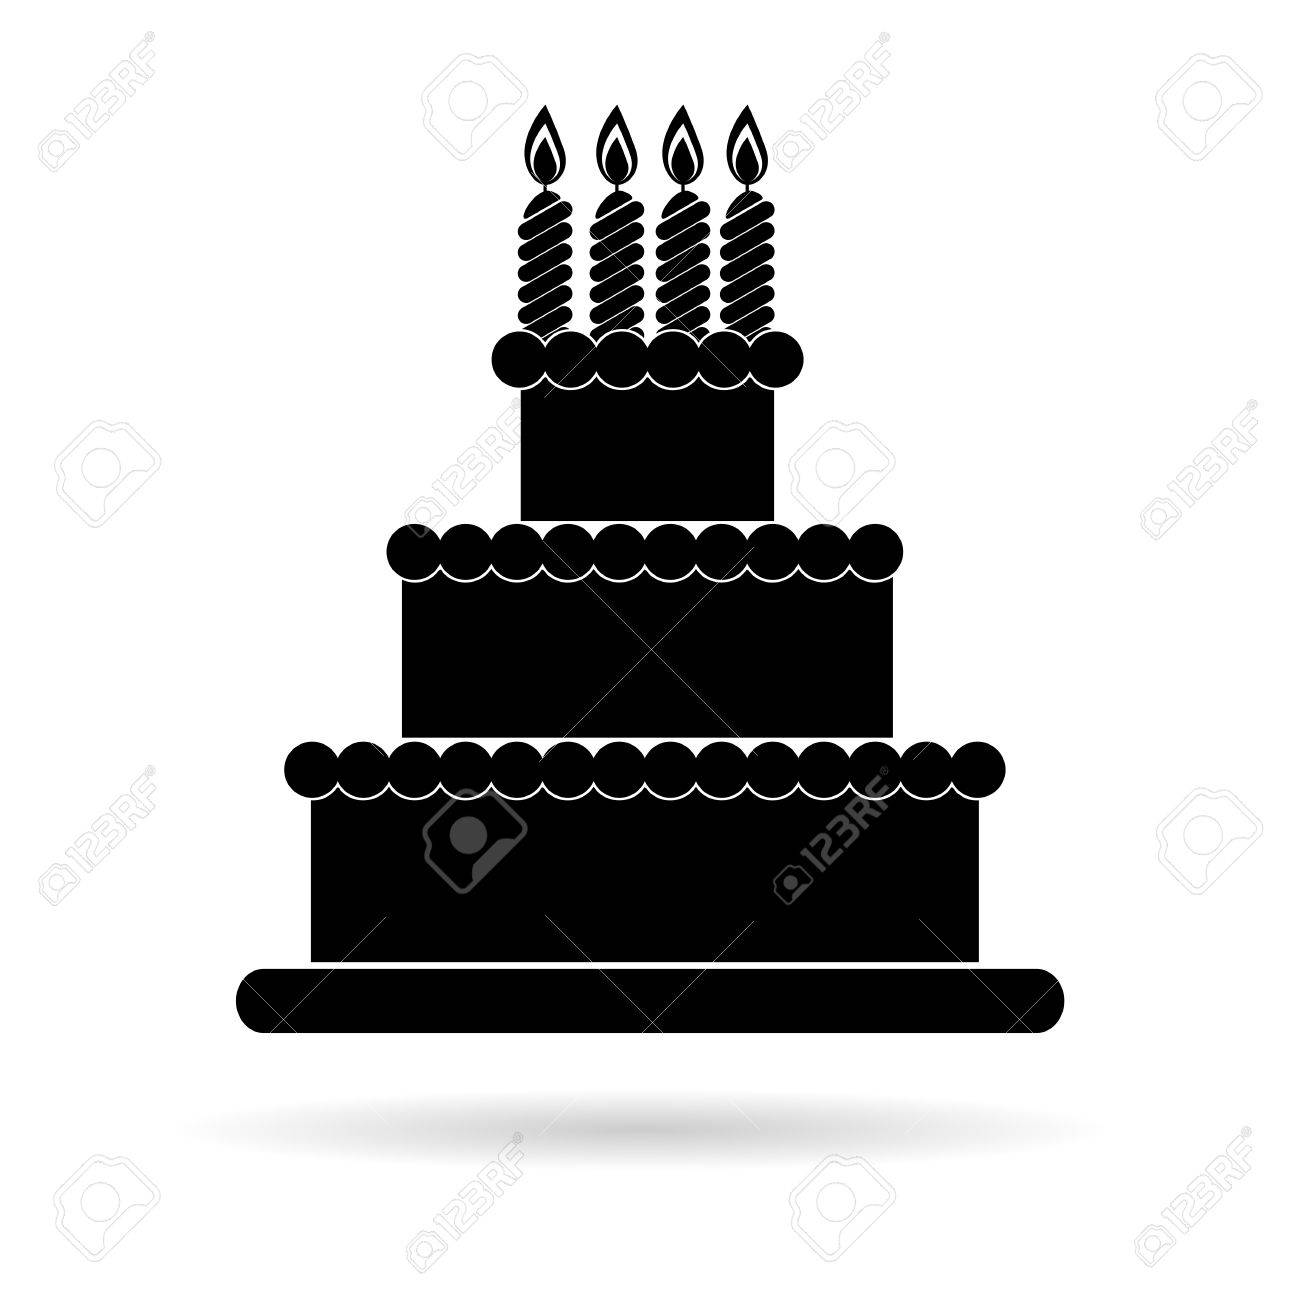 Birthday Cake Black Icon Royalty Free Cliparts Vectors And Stock